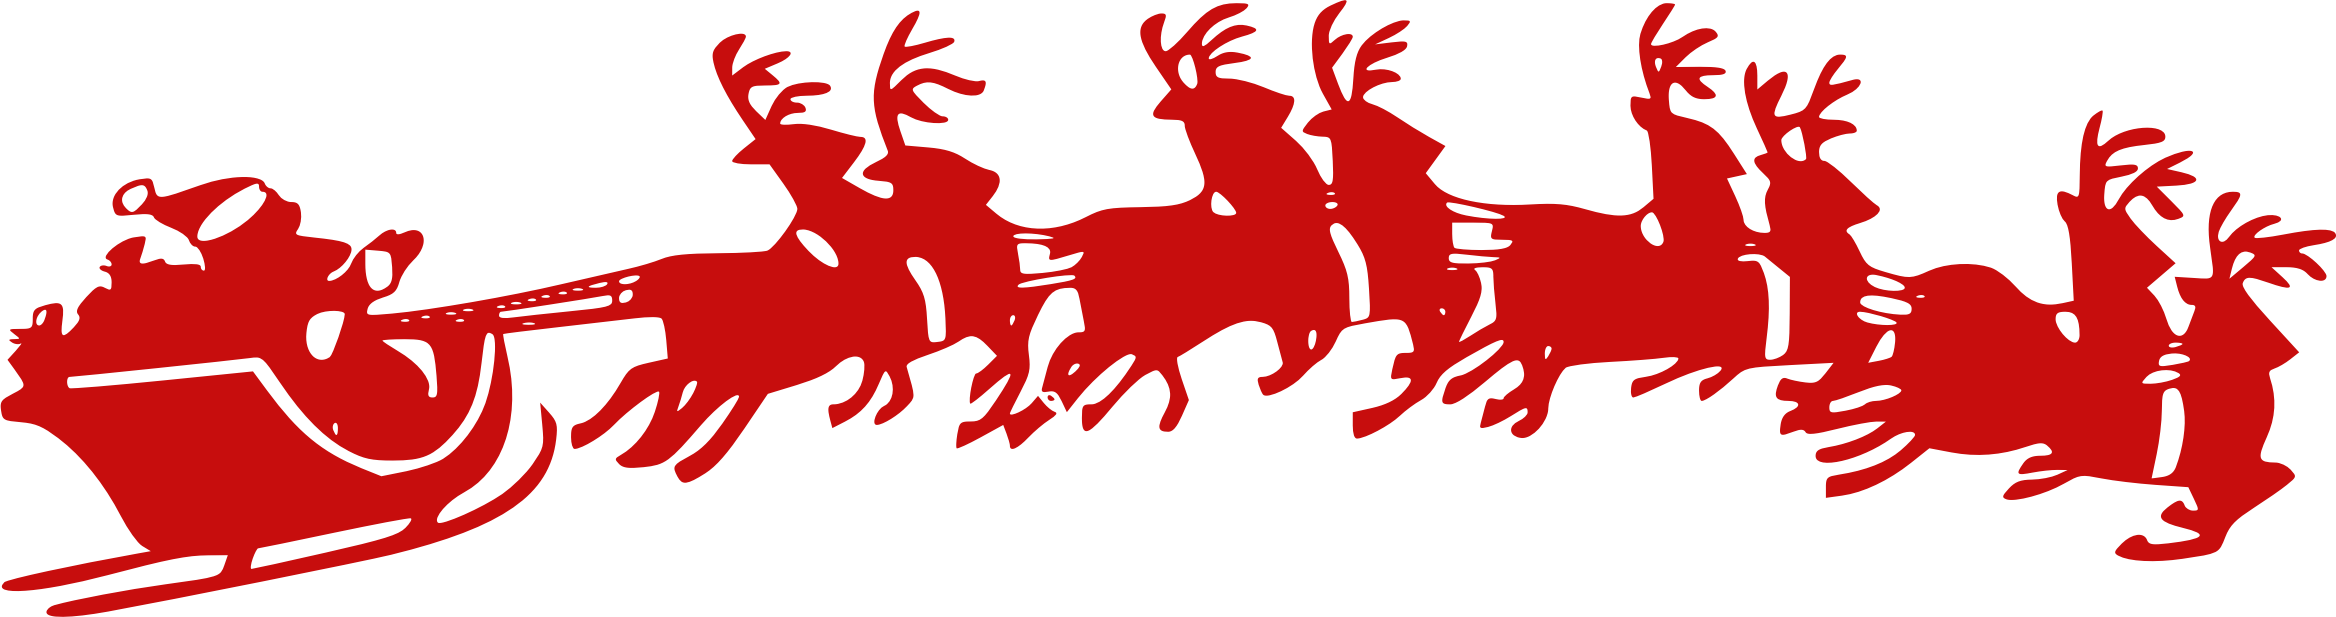 Clipart reindeer sleigh. Santa s icons png